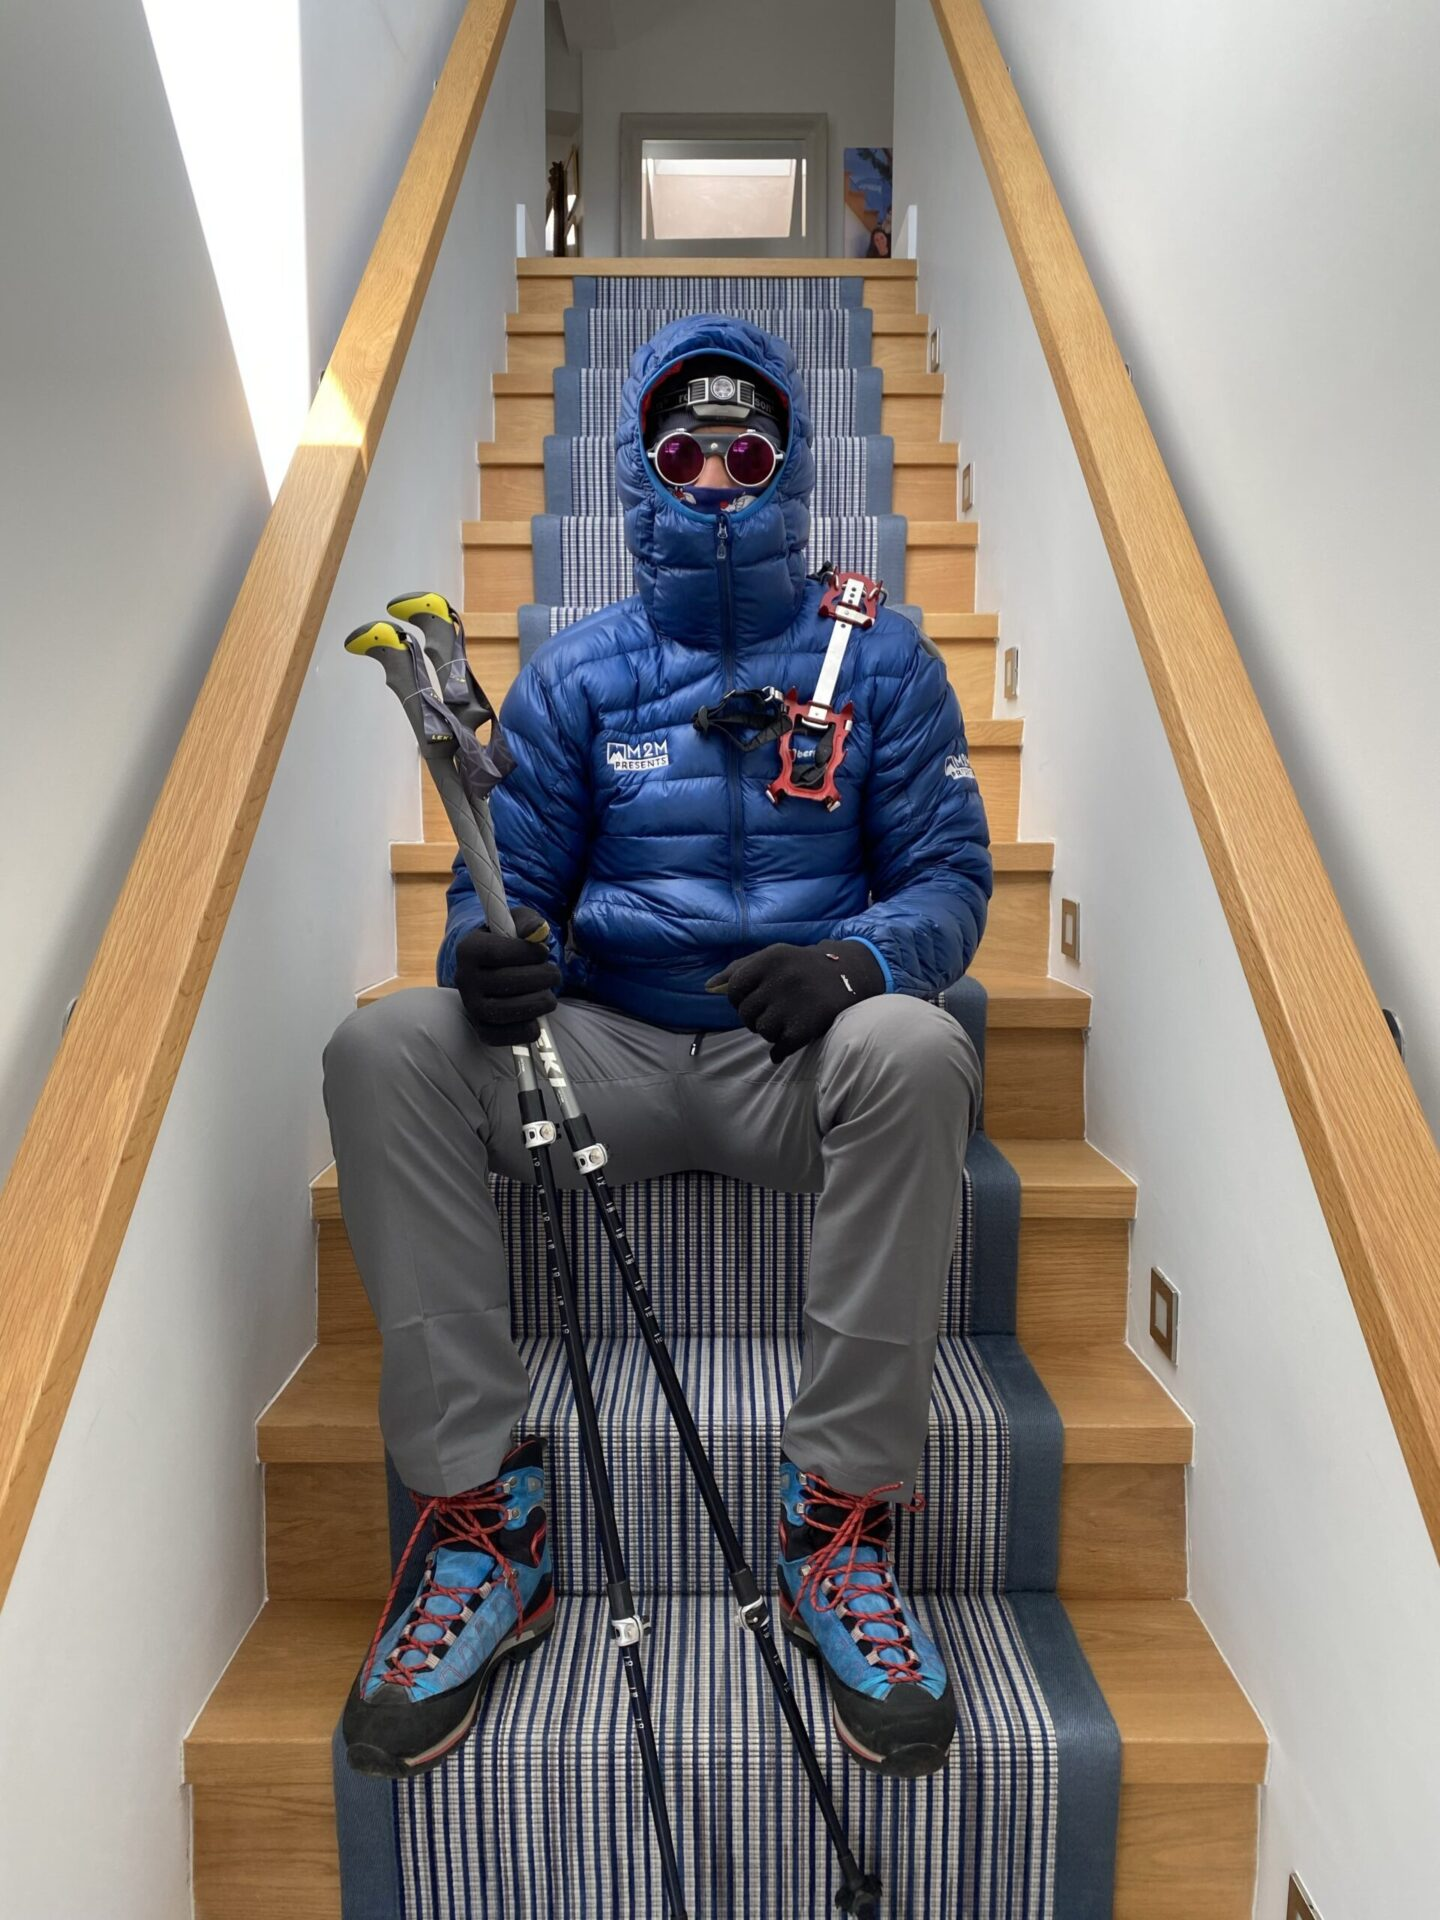 Ed Jackson to scale Mount Everest up his parent's staircase